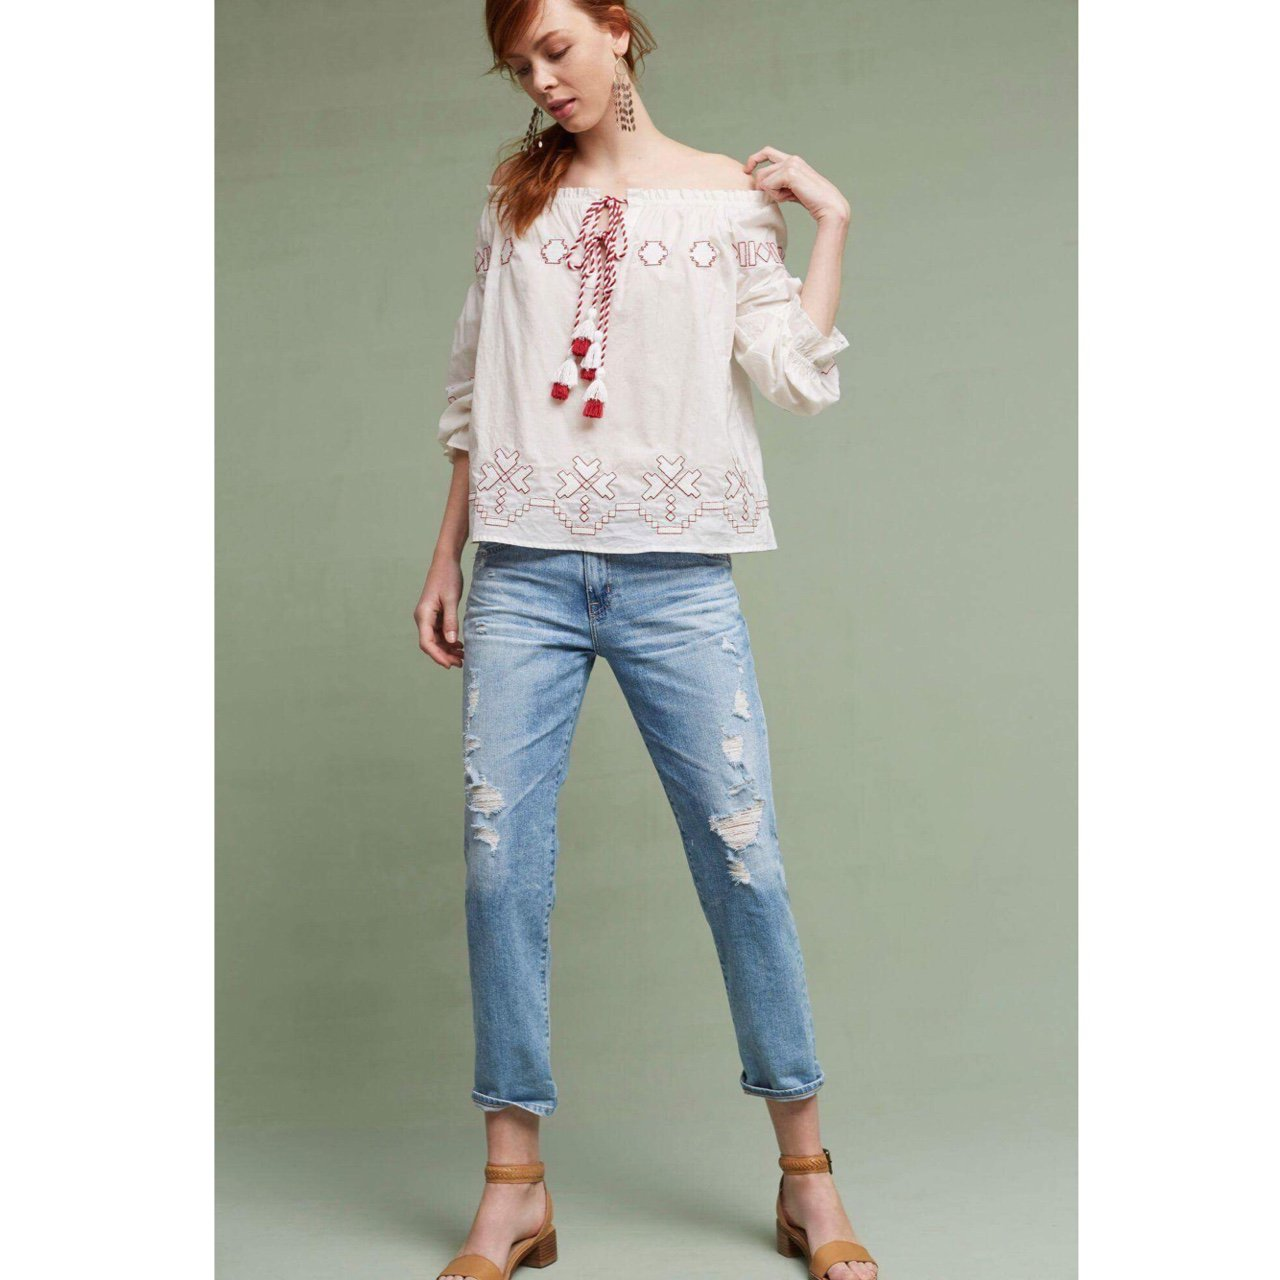 8c3f0831845 Embroidered Off-shoulder top from Anthropologie. The appeals - Depop